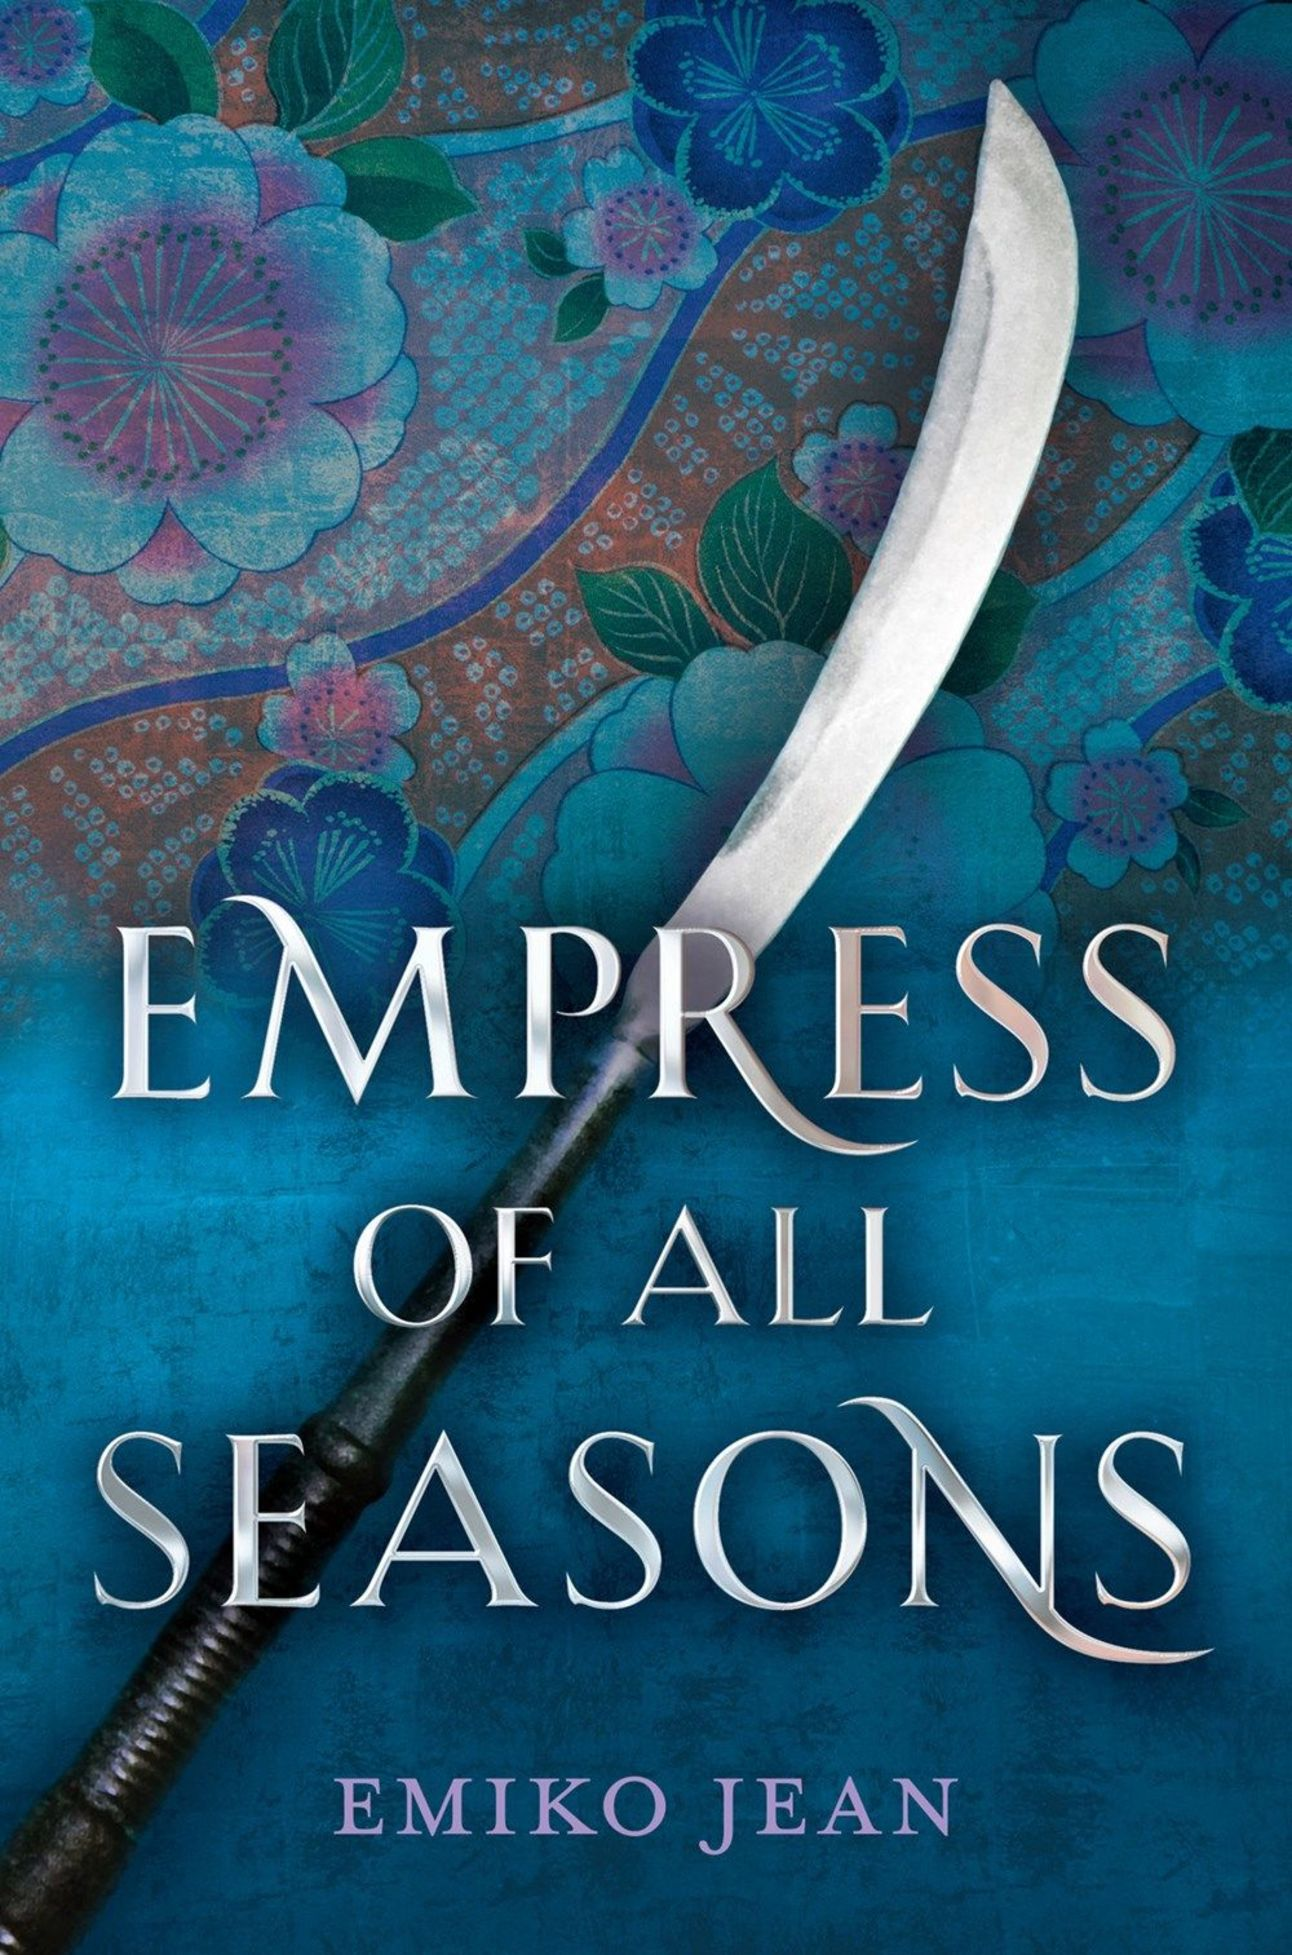 empress-of-all-seasons-emiko-jean